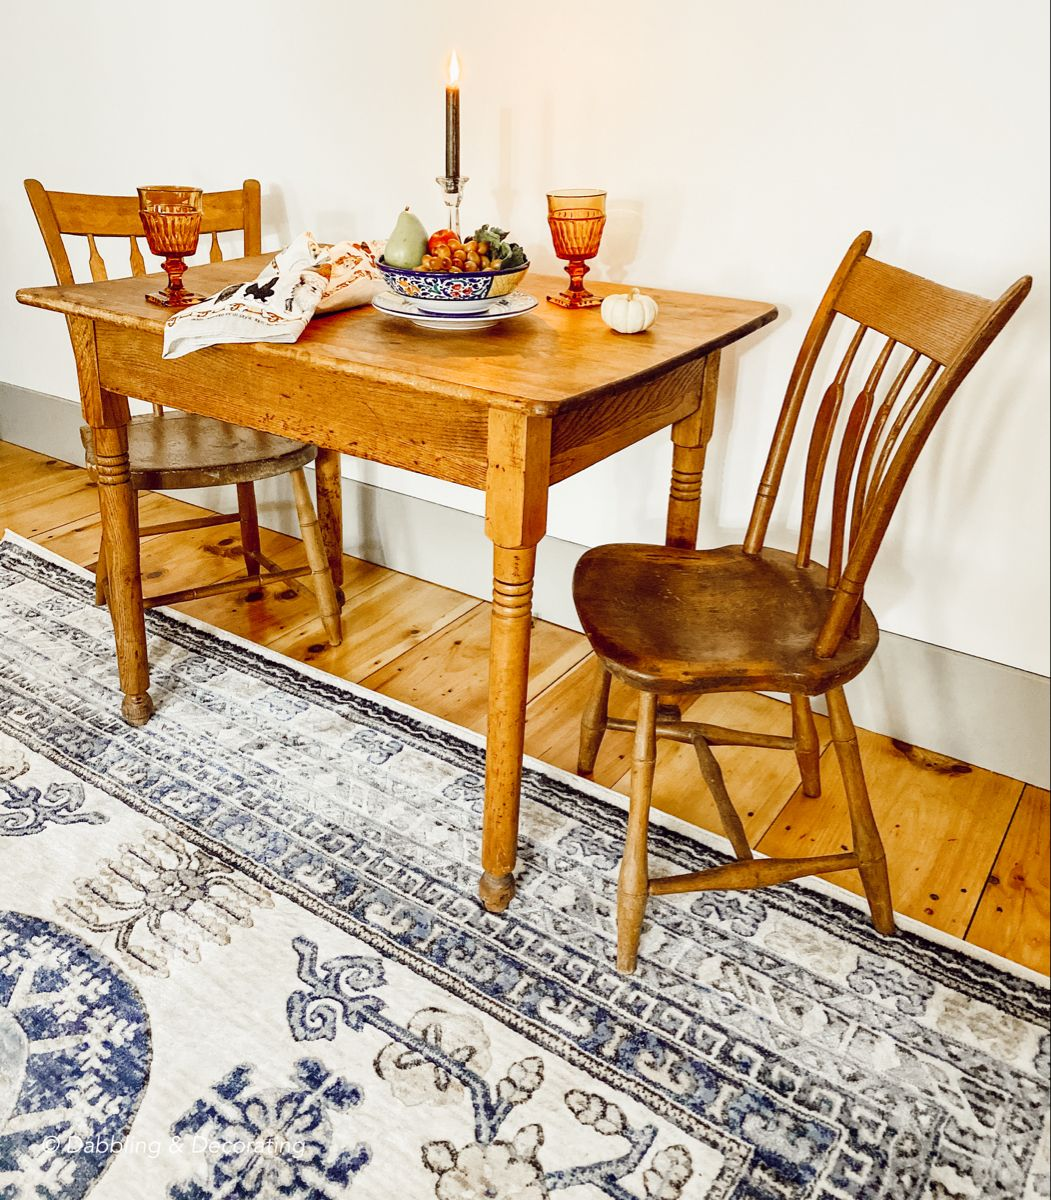 A small antique table for two in our coastal Maine home living room for fireside dining, coffee, beverage table, and so much more! #table #tableandchairs #antiquetable #vintage #vintagedecor #vintagehomedecor #vintagestyle #vintageaesthetic #vintagehome